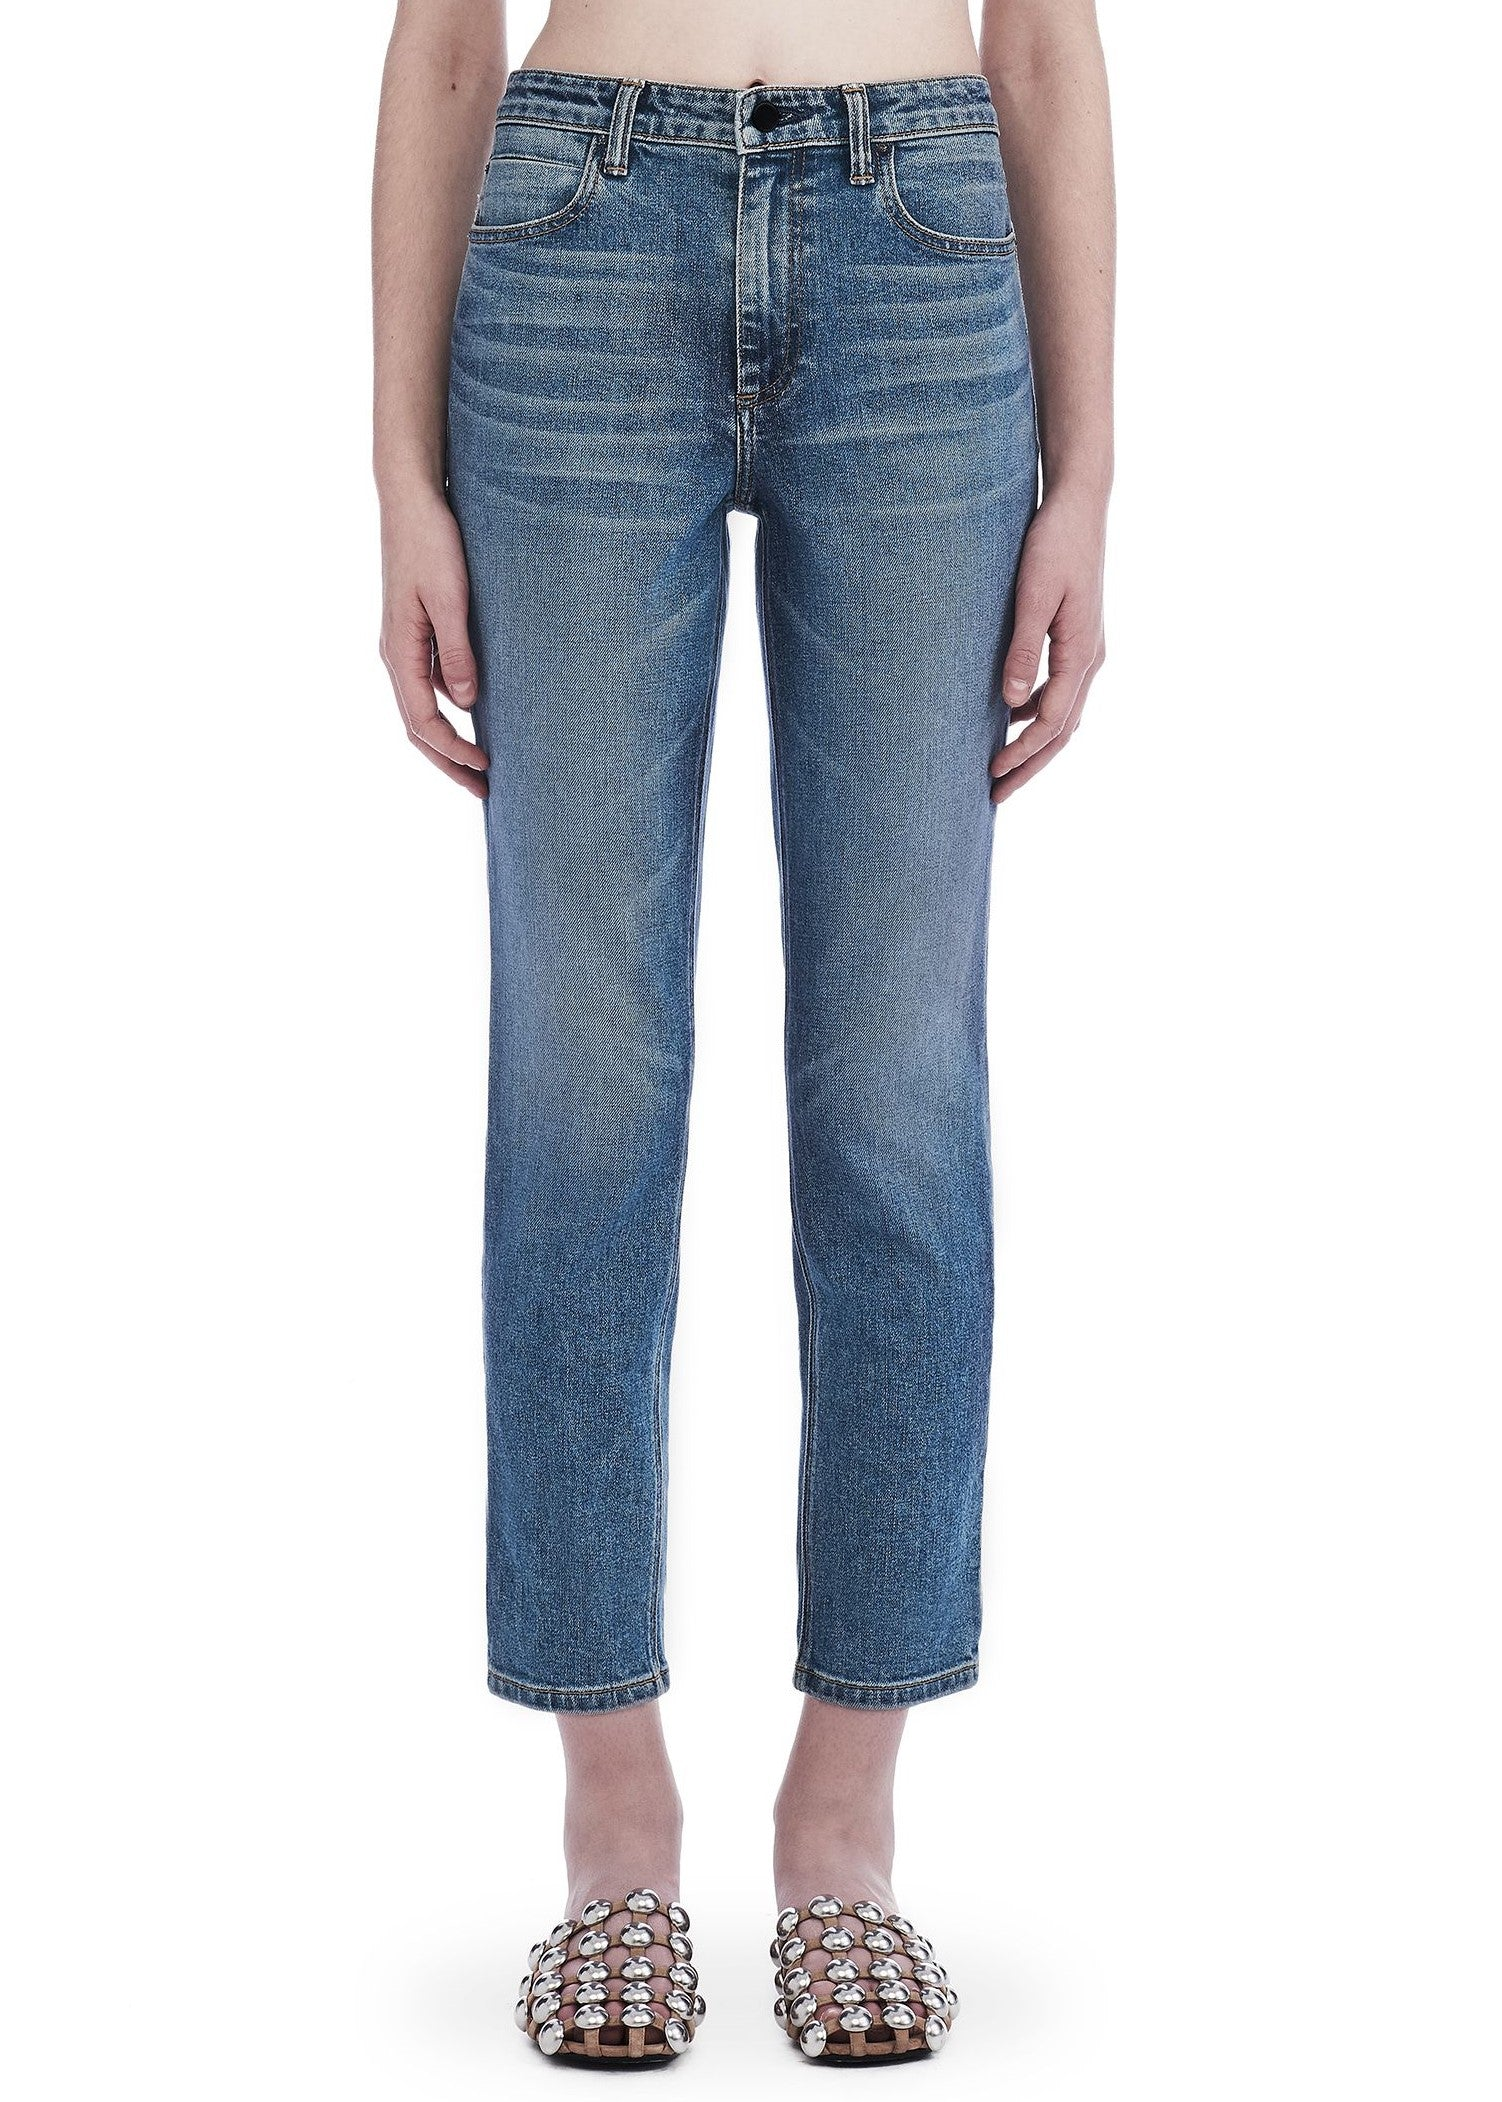 T by Alexander Wang high rise straight leg light indigo aged